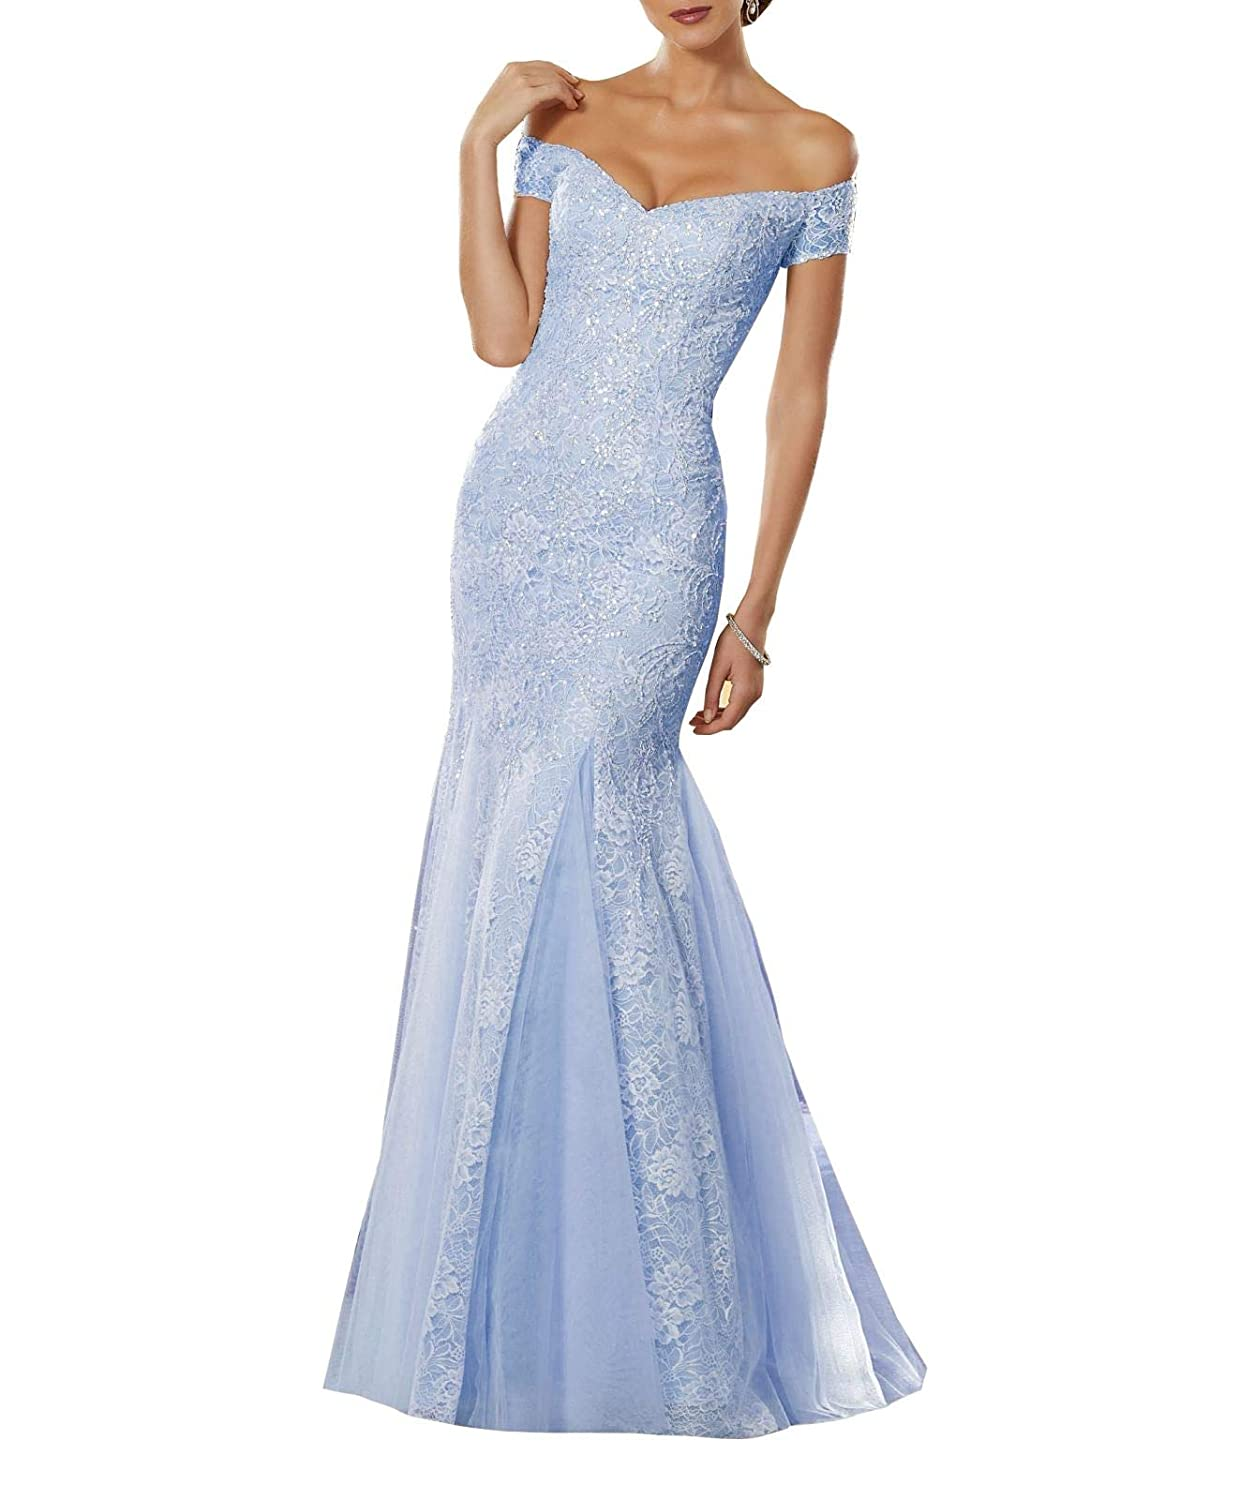 Cornflowerbluee Aishanglina Aline Sexy Off The Shoulder Lace Embroidered Party Dress Prom Gown with Jewelled Beading